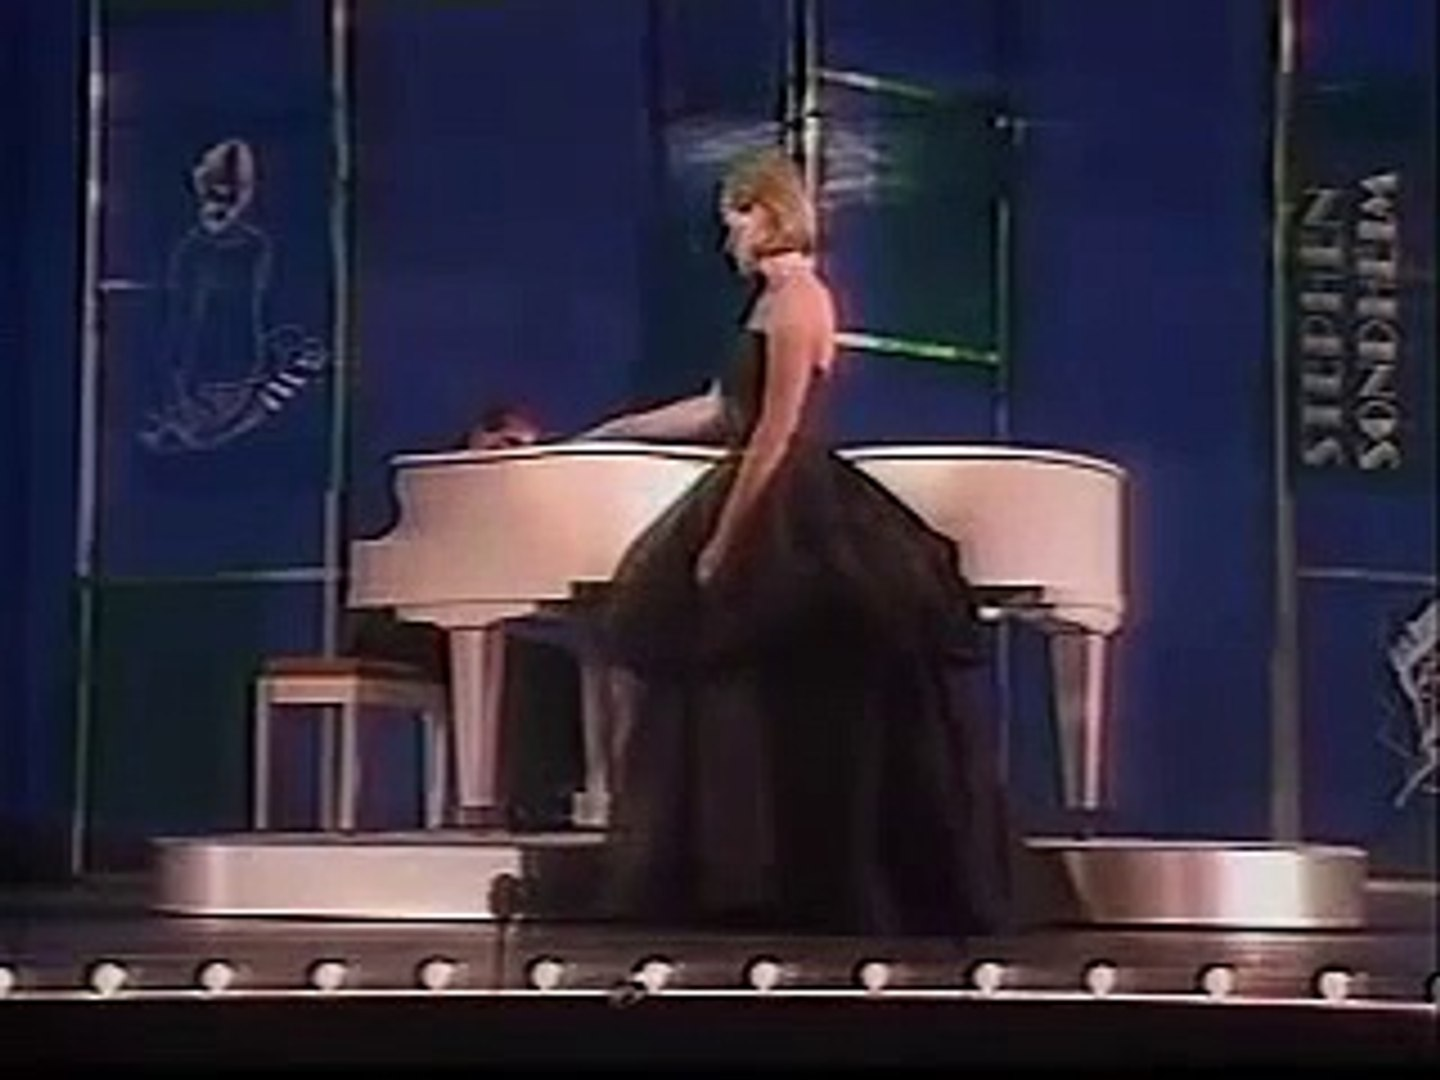 Send in the clowns - A little night music - Julie Andrews - 1984